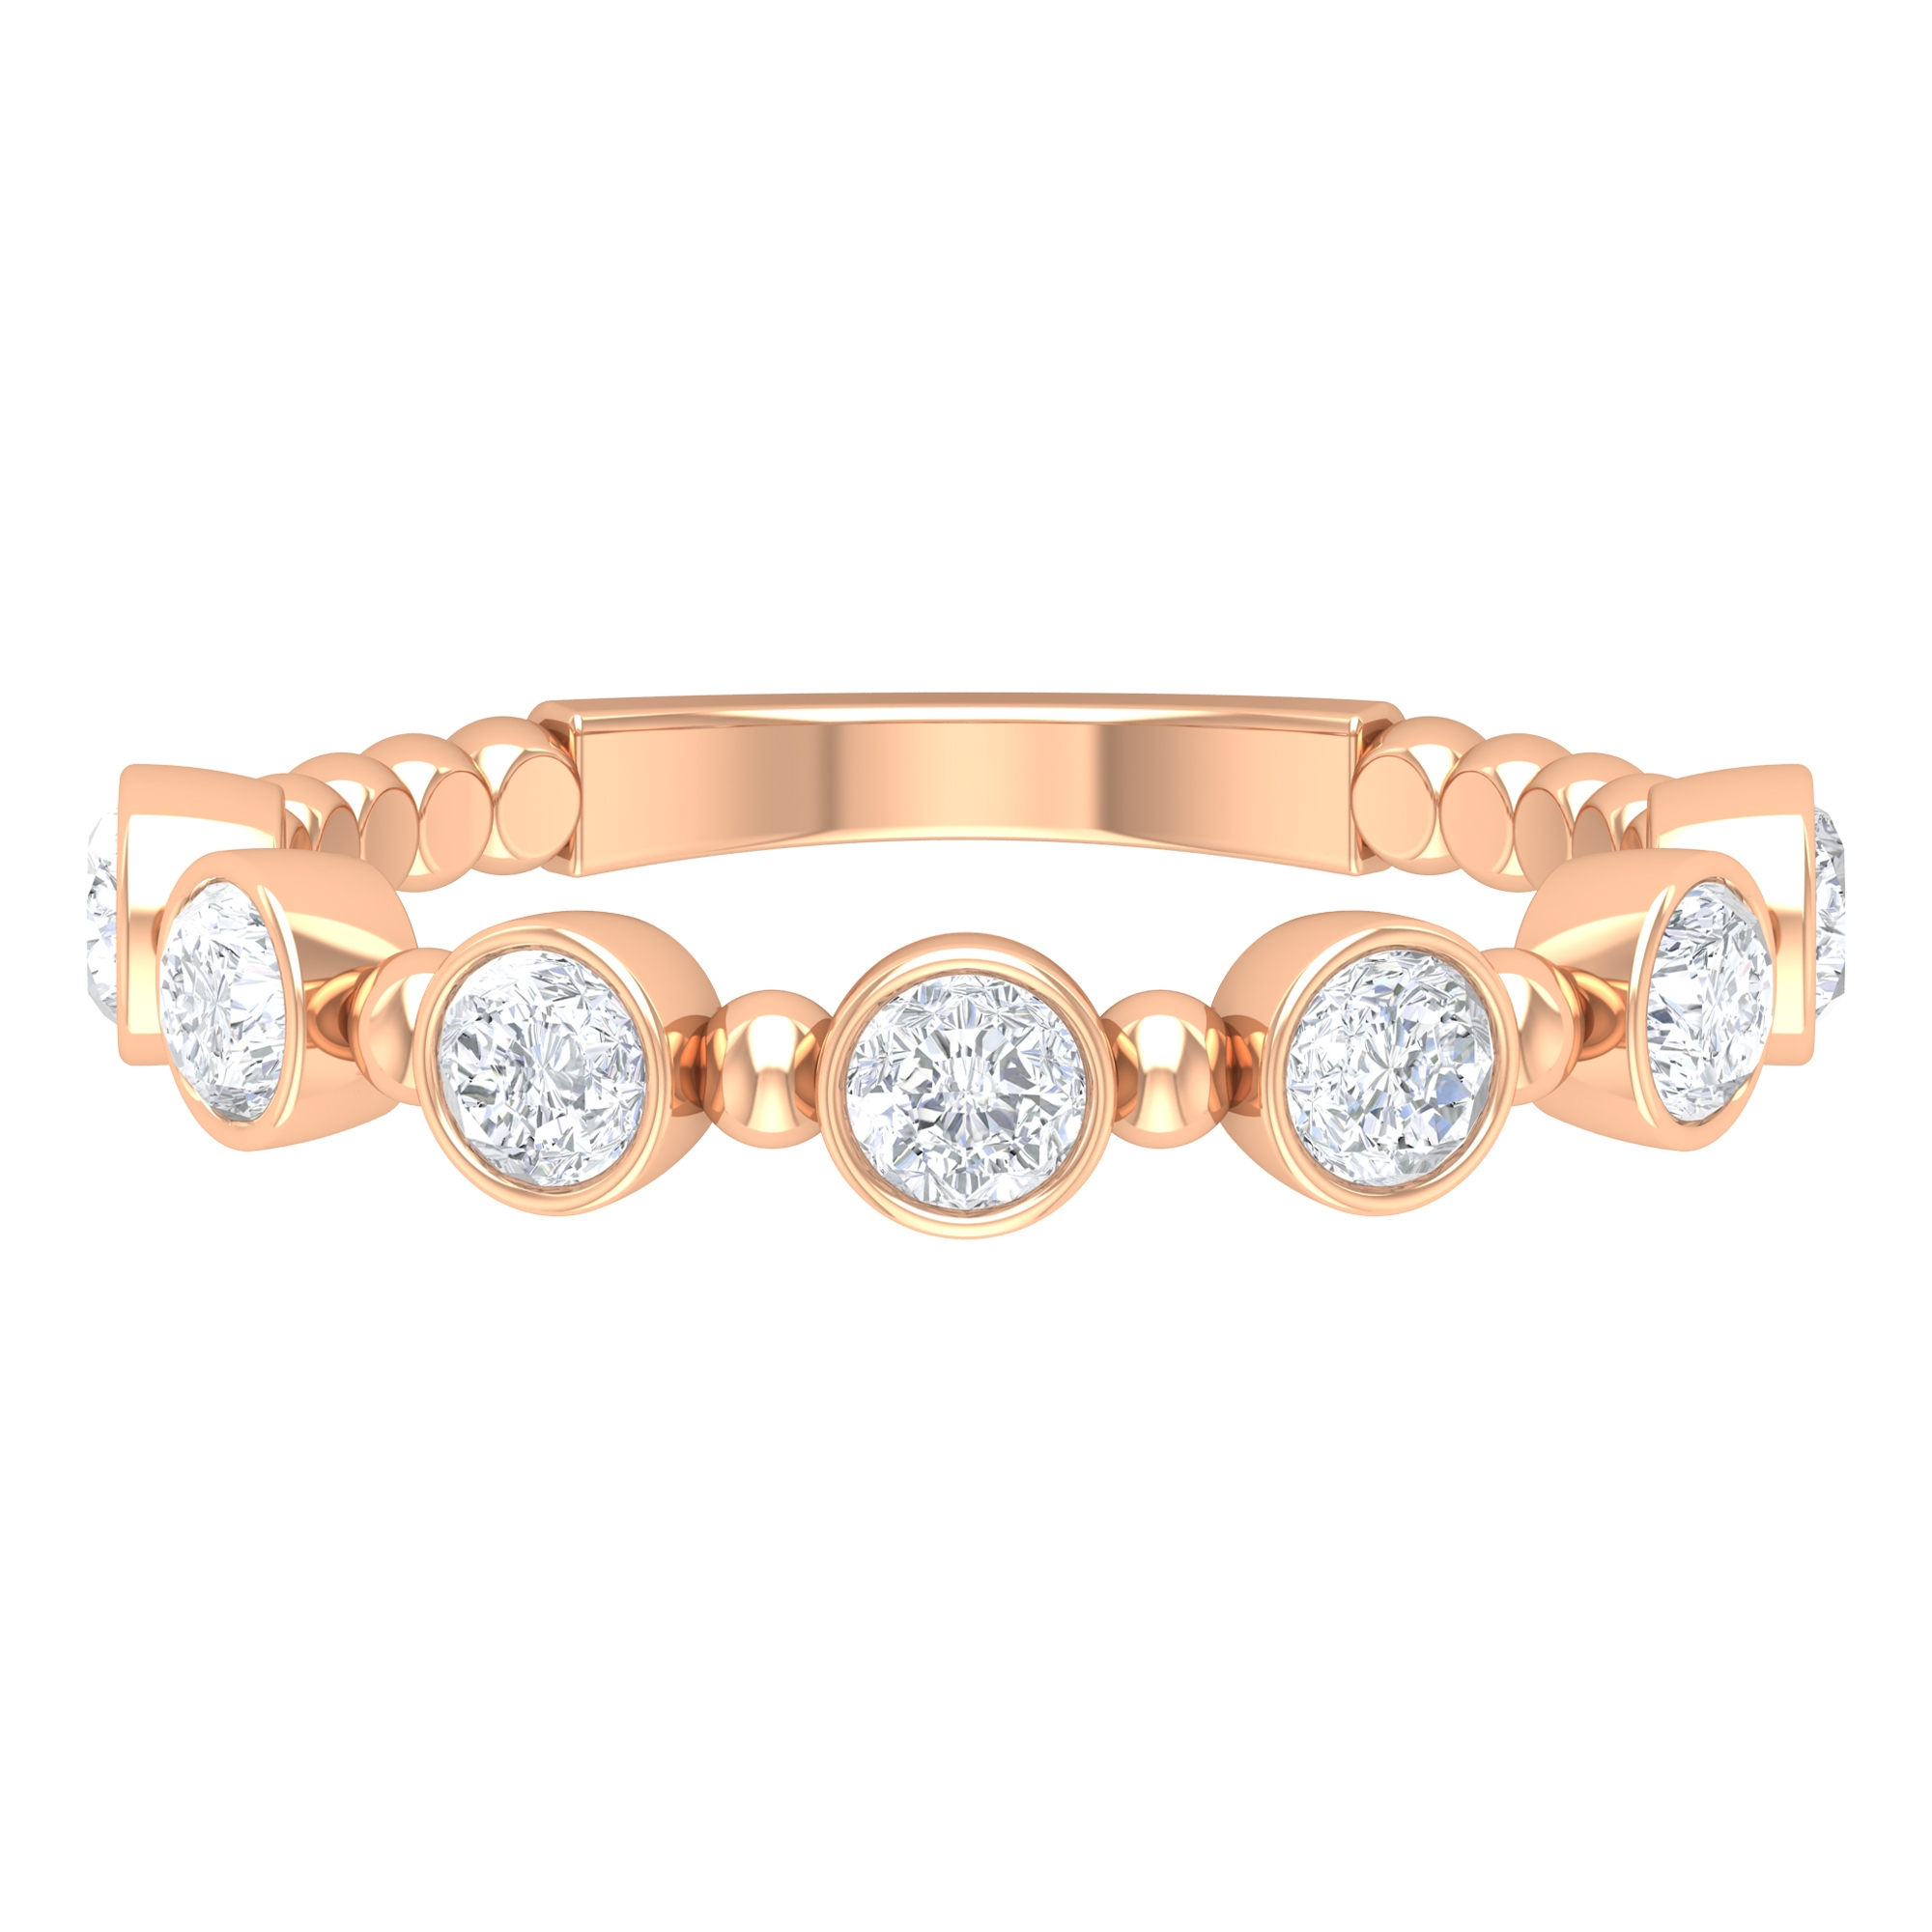 0.75 CT Diamond Stackable Gold Ring with Beaded Embellishment and Bezel Setting for Women